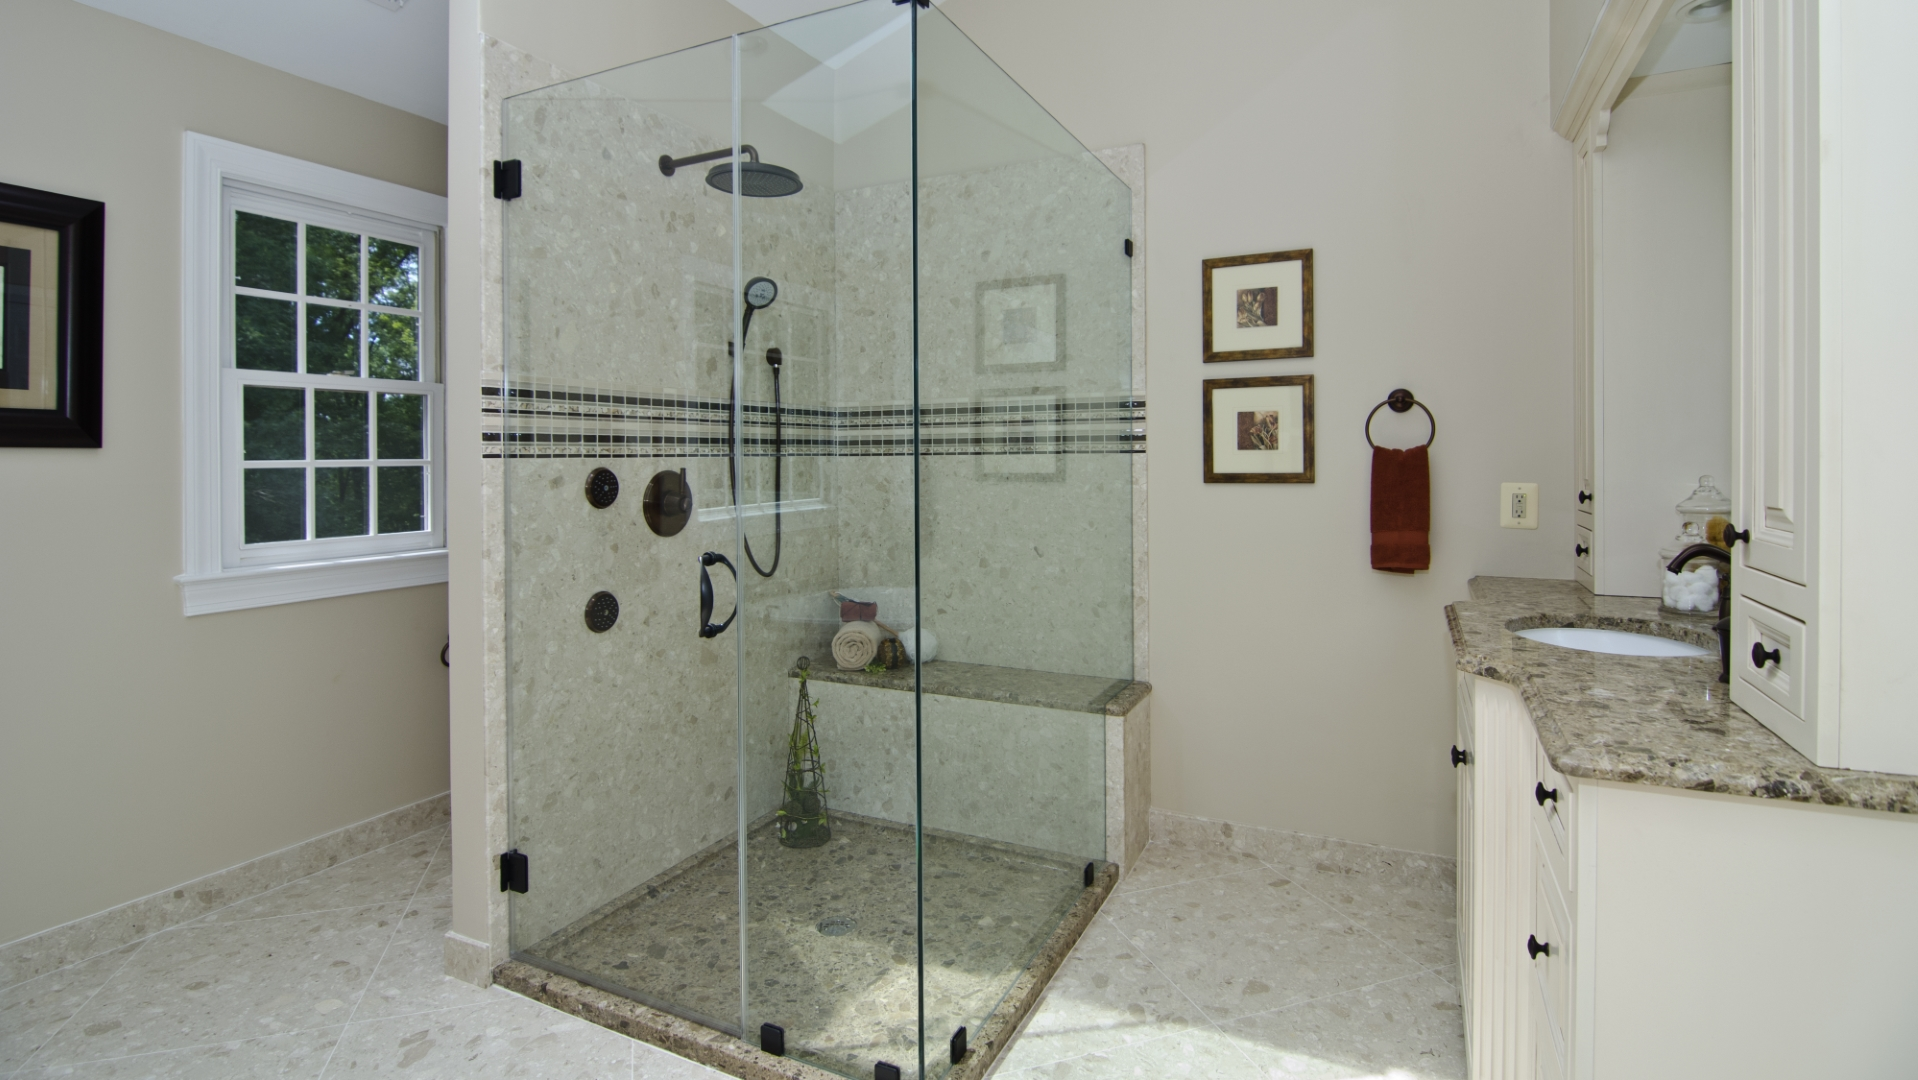 Groutless shower walls and floors in Engineered Marble